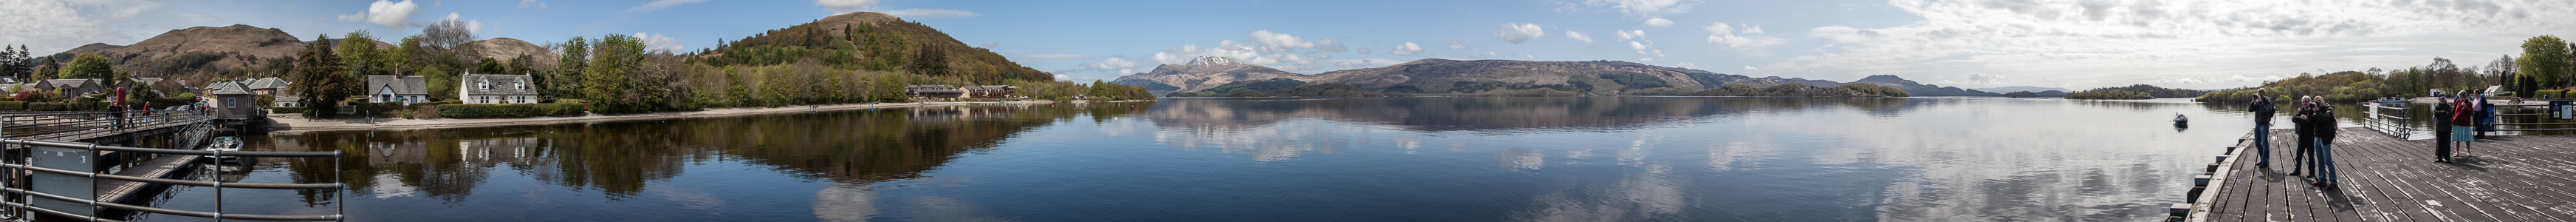 Luss Loch Lomond and The Trossachs National Park